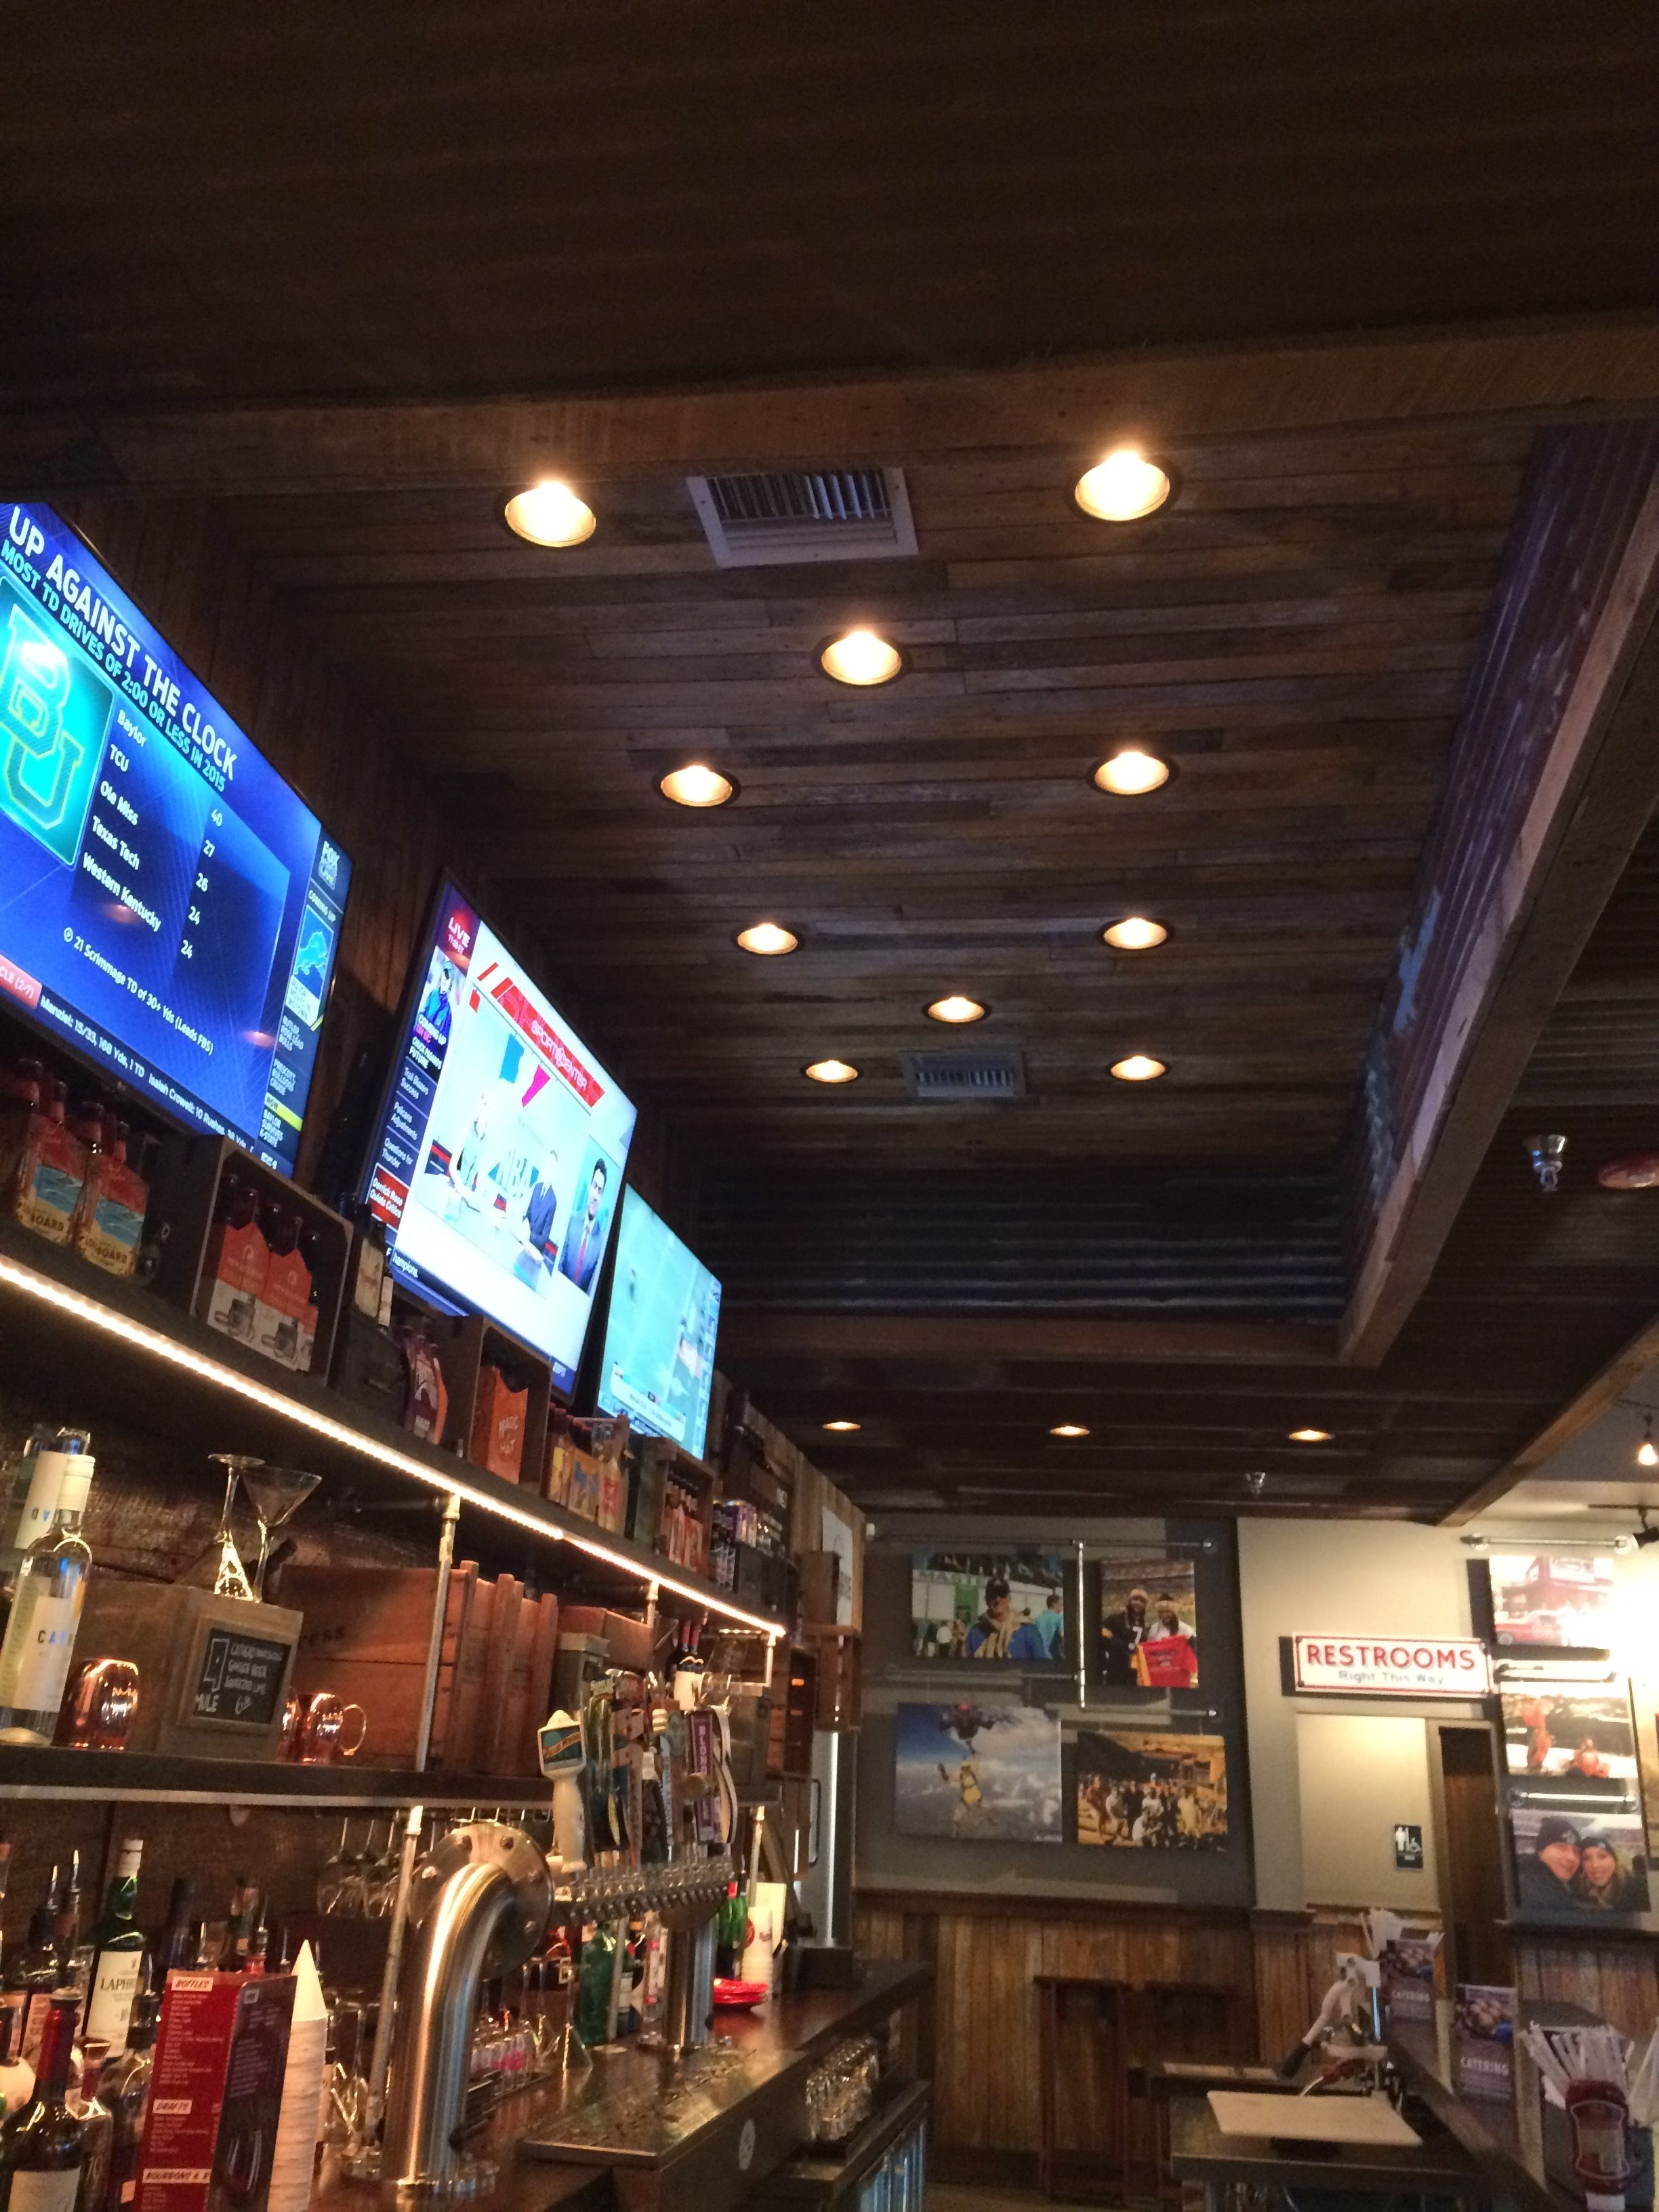 View from the inside of the bar at Mugshots in Ridgeland, MS